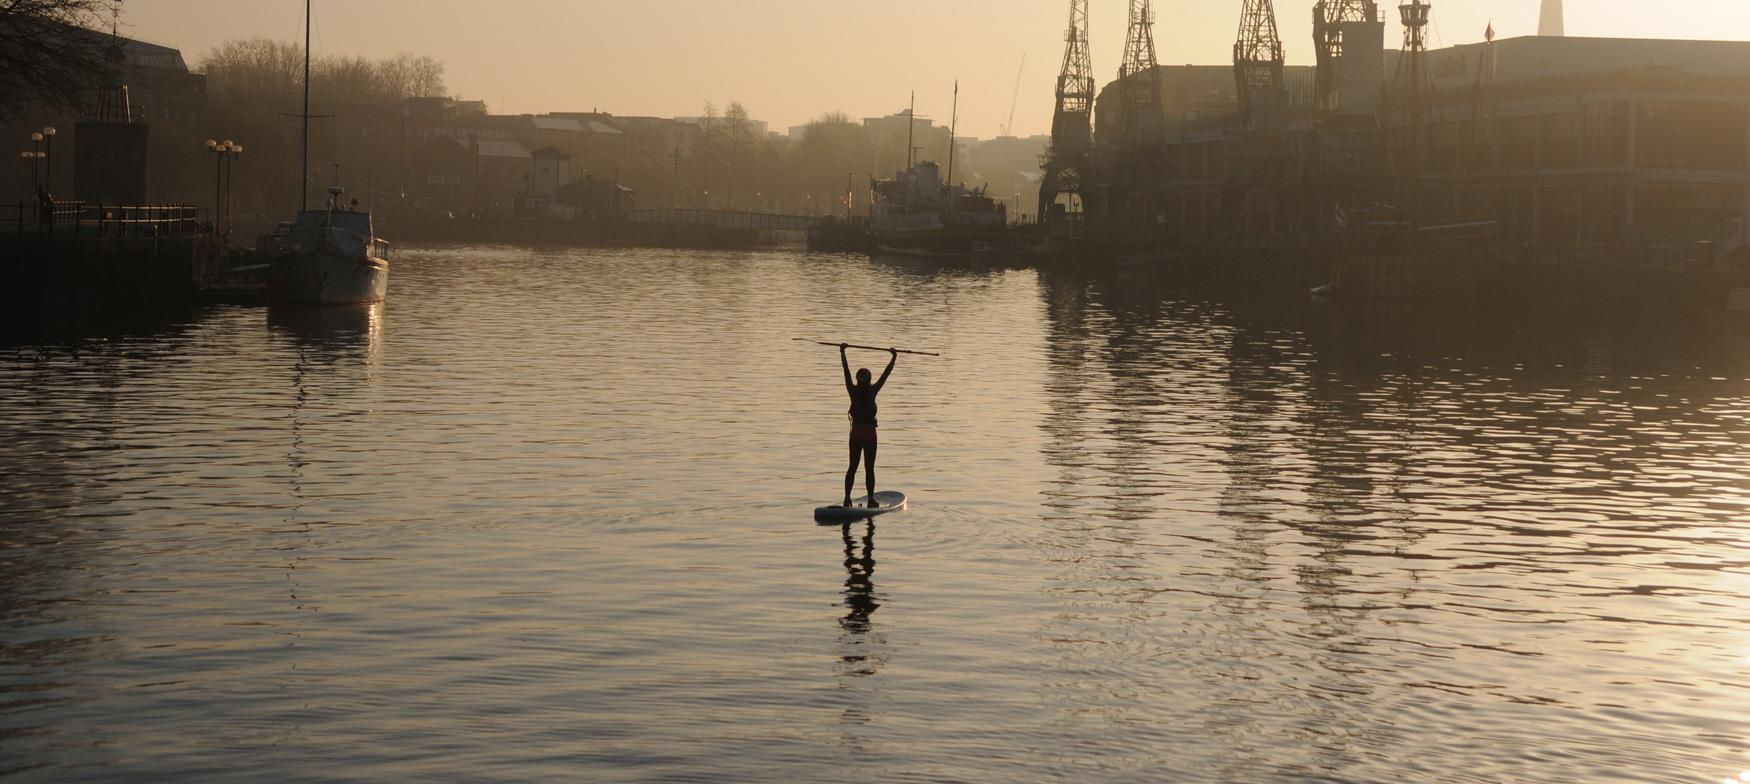 Try Paddle Boarding along the way